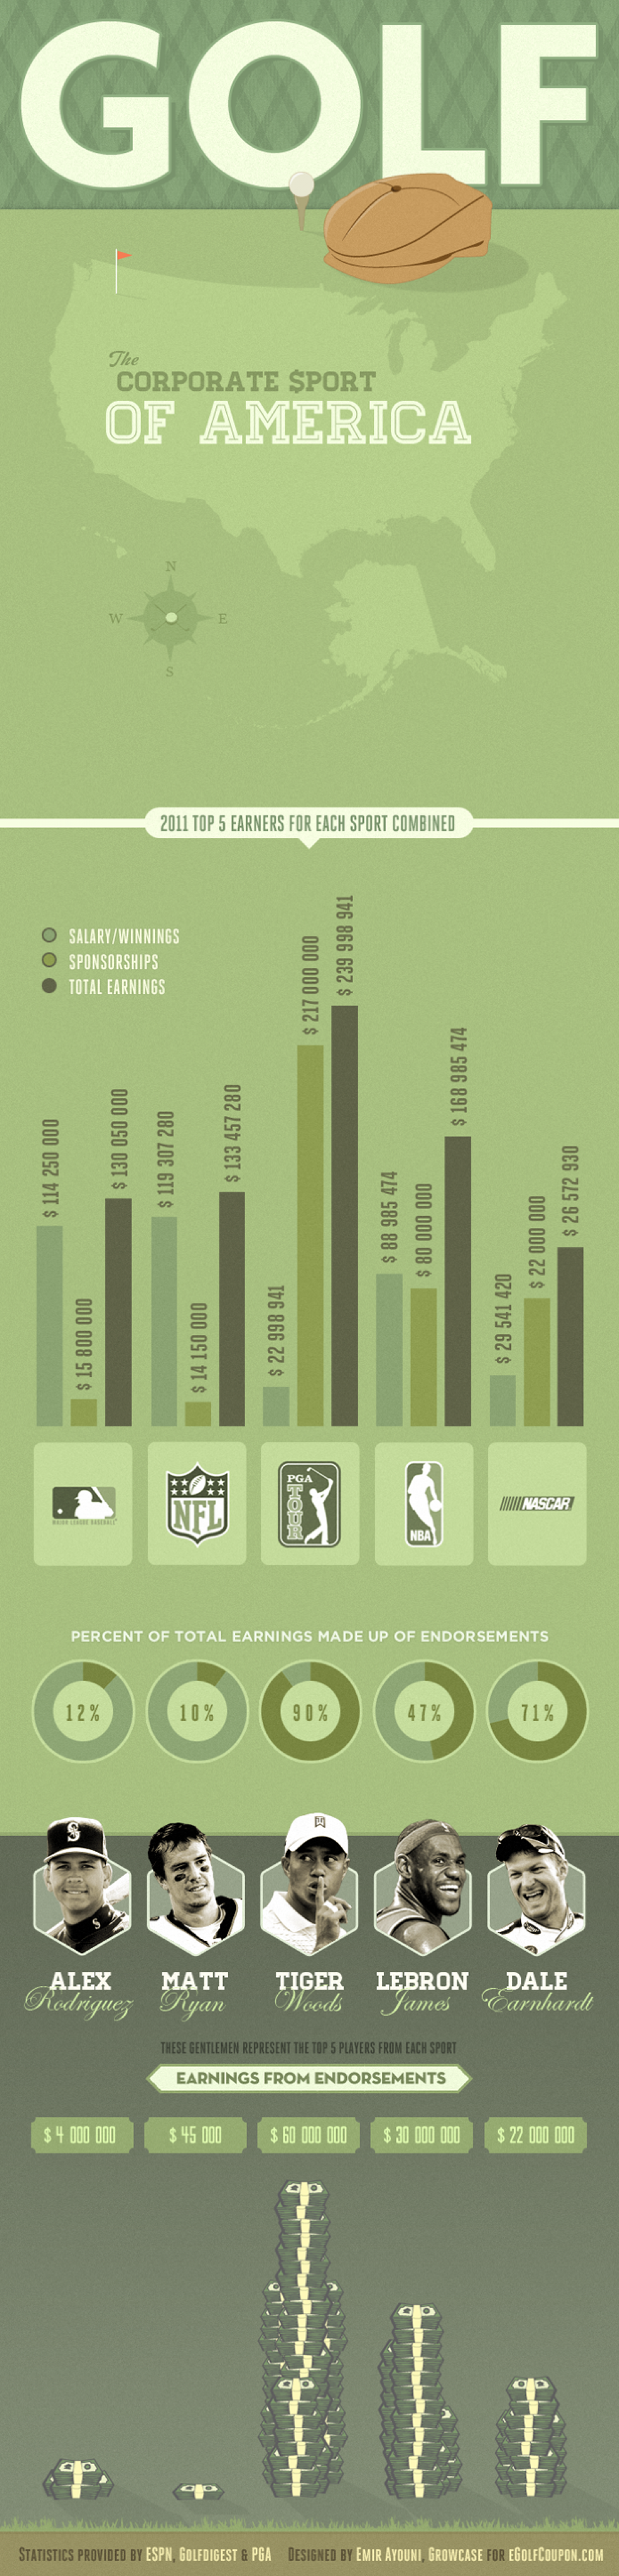 Golf, the Corporate Sport of America in 2011 Infographic